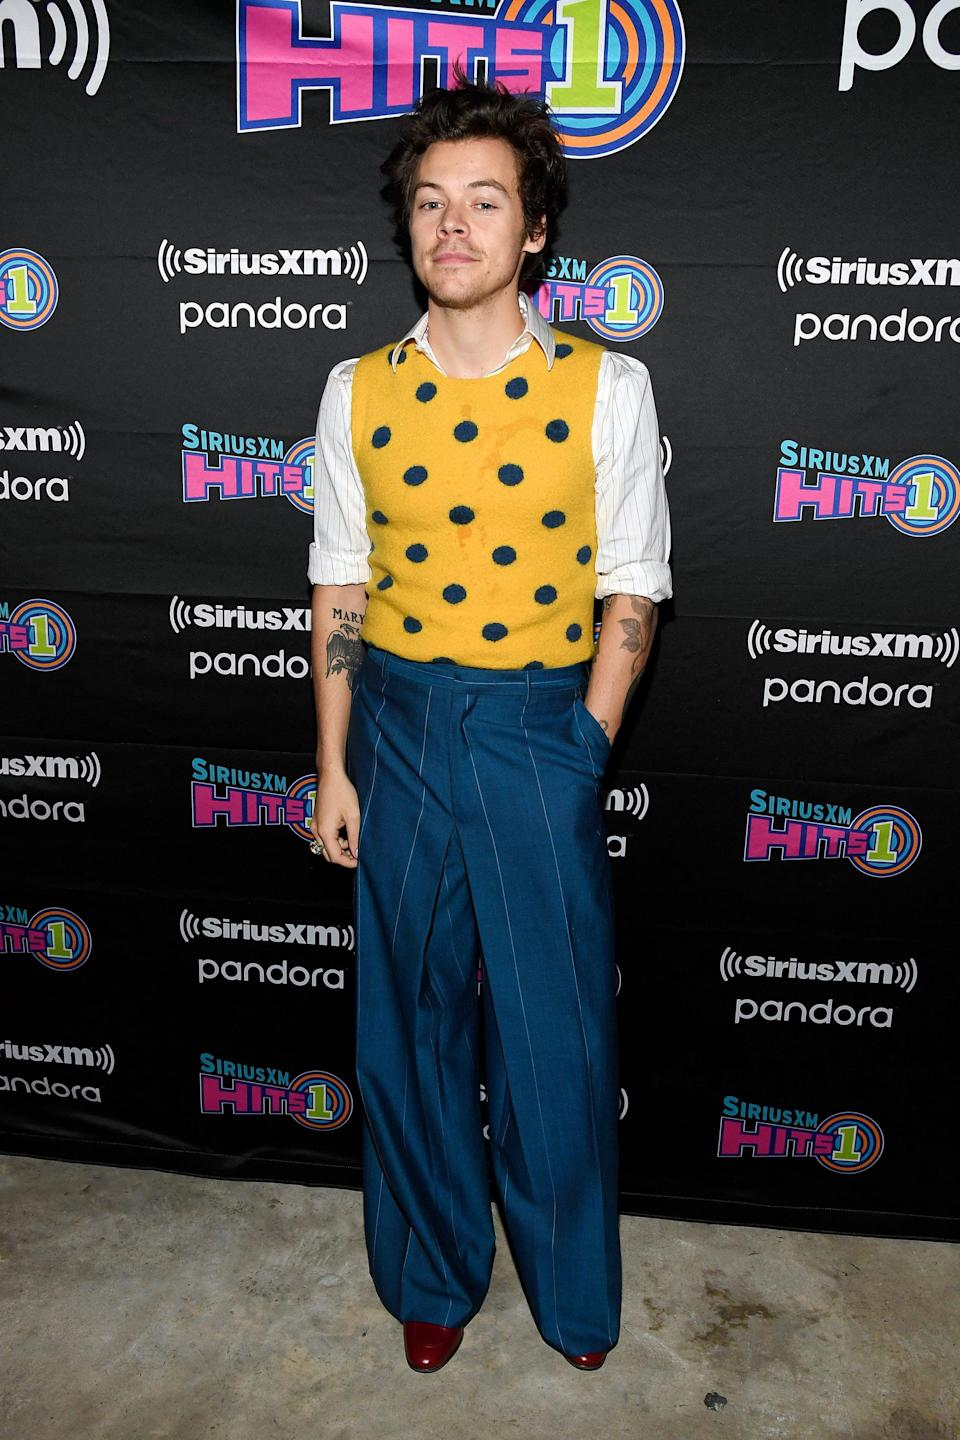 """<p>For <a href=""""https://www.popsugar.com/entertainment/harry-styles-siriusxm-and-pandora-nyc-concert-february-2020-47266809"""" class=""""link rapid-noclick-resp"""" rel=""""nofollow noopener"""" target=""""_blank"""" data-ylk=""""slk:a secret concert in New York City"""">a secret concert in New York City</a>, Harry served up grandma chic in a yellow and blue Lanvin sweater vest, striped button-down, navy pinstripe trousers, and red heeled boots. God, do we love it when he rolls his sleeves to show off <a href=""""https://www.popsugar.com/beauty/harry-styles-tattoos-meanings-47870514"""" class=""""link rapid-noclick-resp"""" rel=""""nofollow noopener"""" target=""""_blank"""" data-ylk=""""slk:his tattoos"""">his tattoos</a>.</p>"""